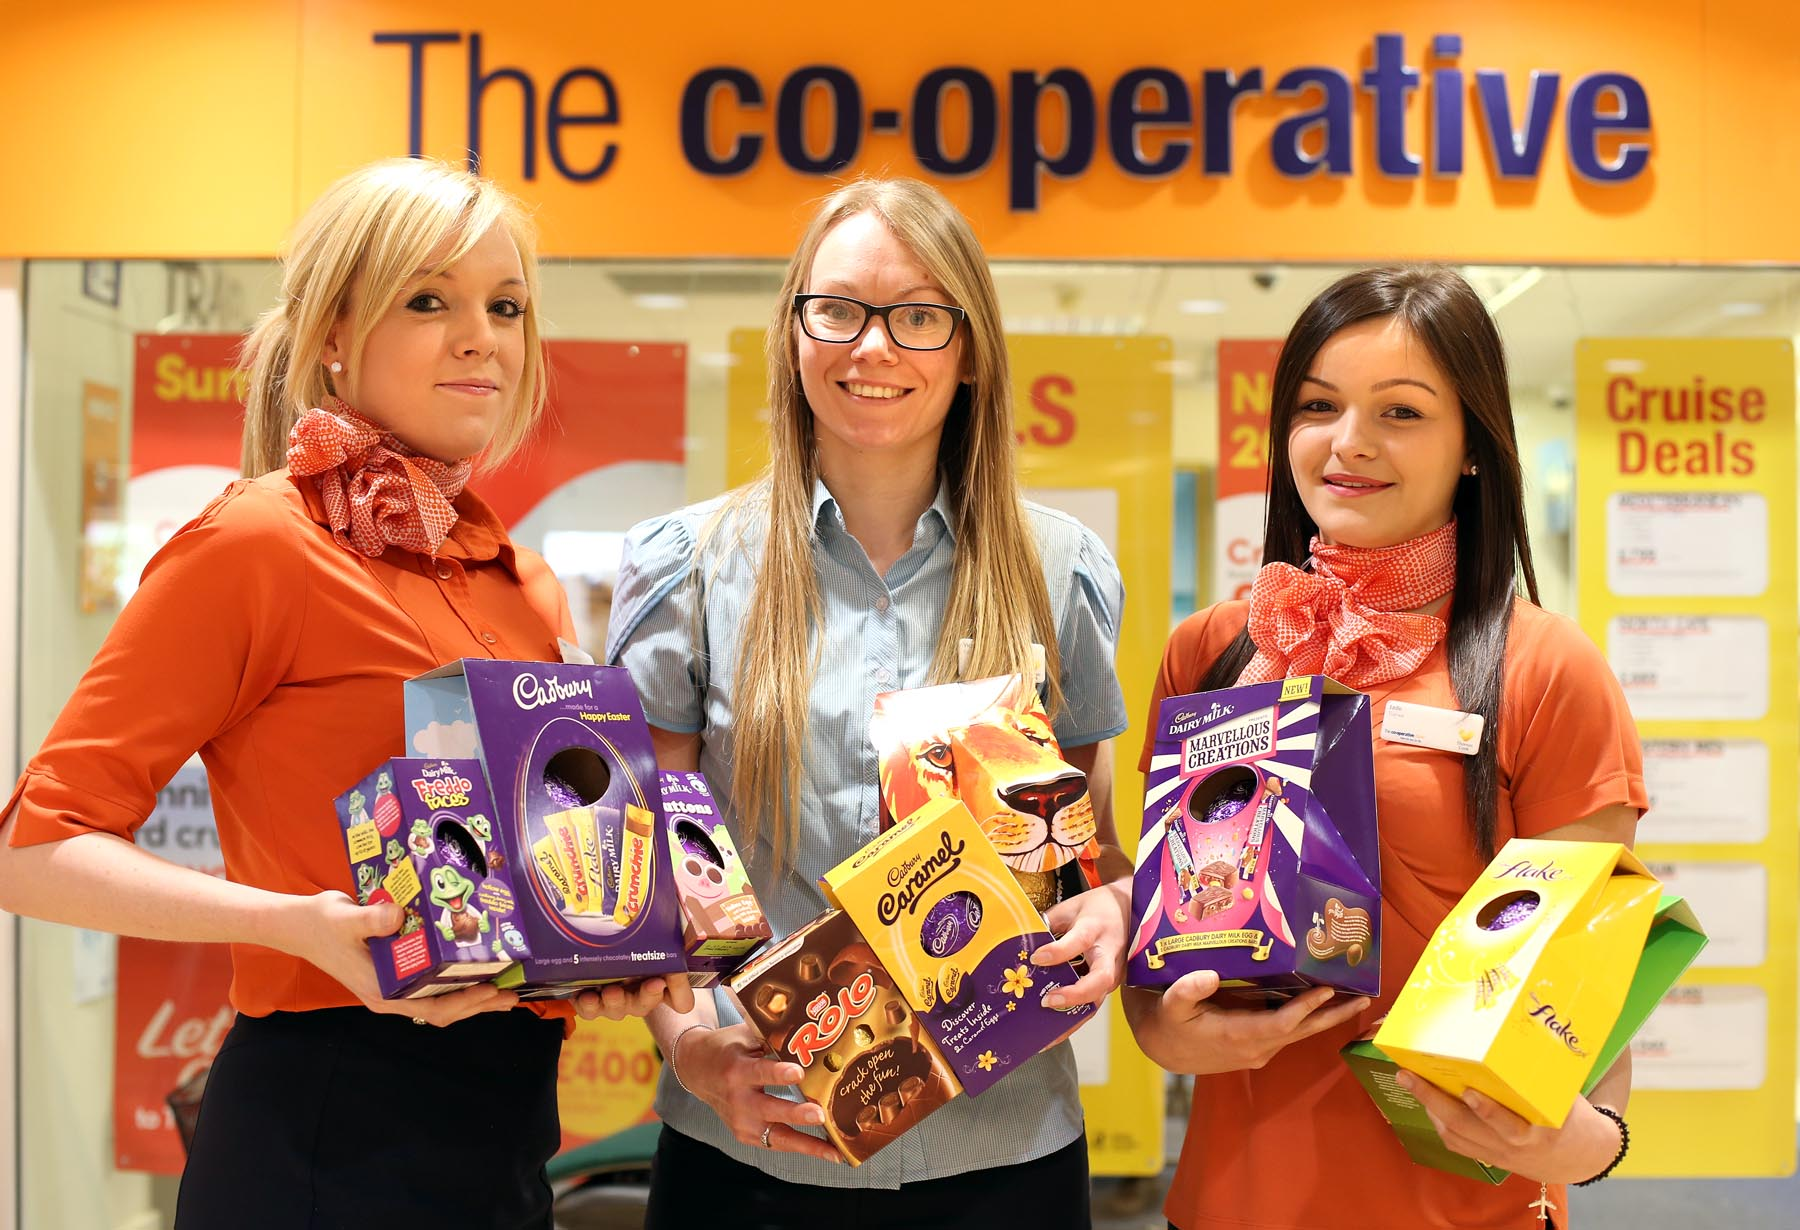 PUTTING A SMILE ON FACES: Co-operative Travel in Morrisons, in North Road, Darlington, launches the Easter egg collection along with Thomas Cook travel agents, from left, Amy